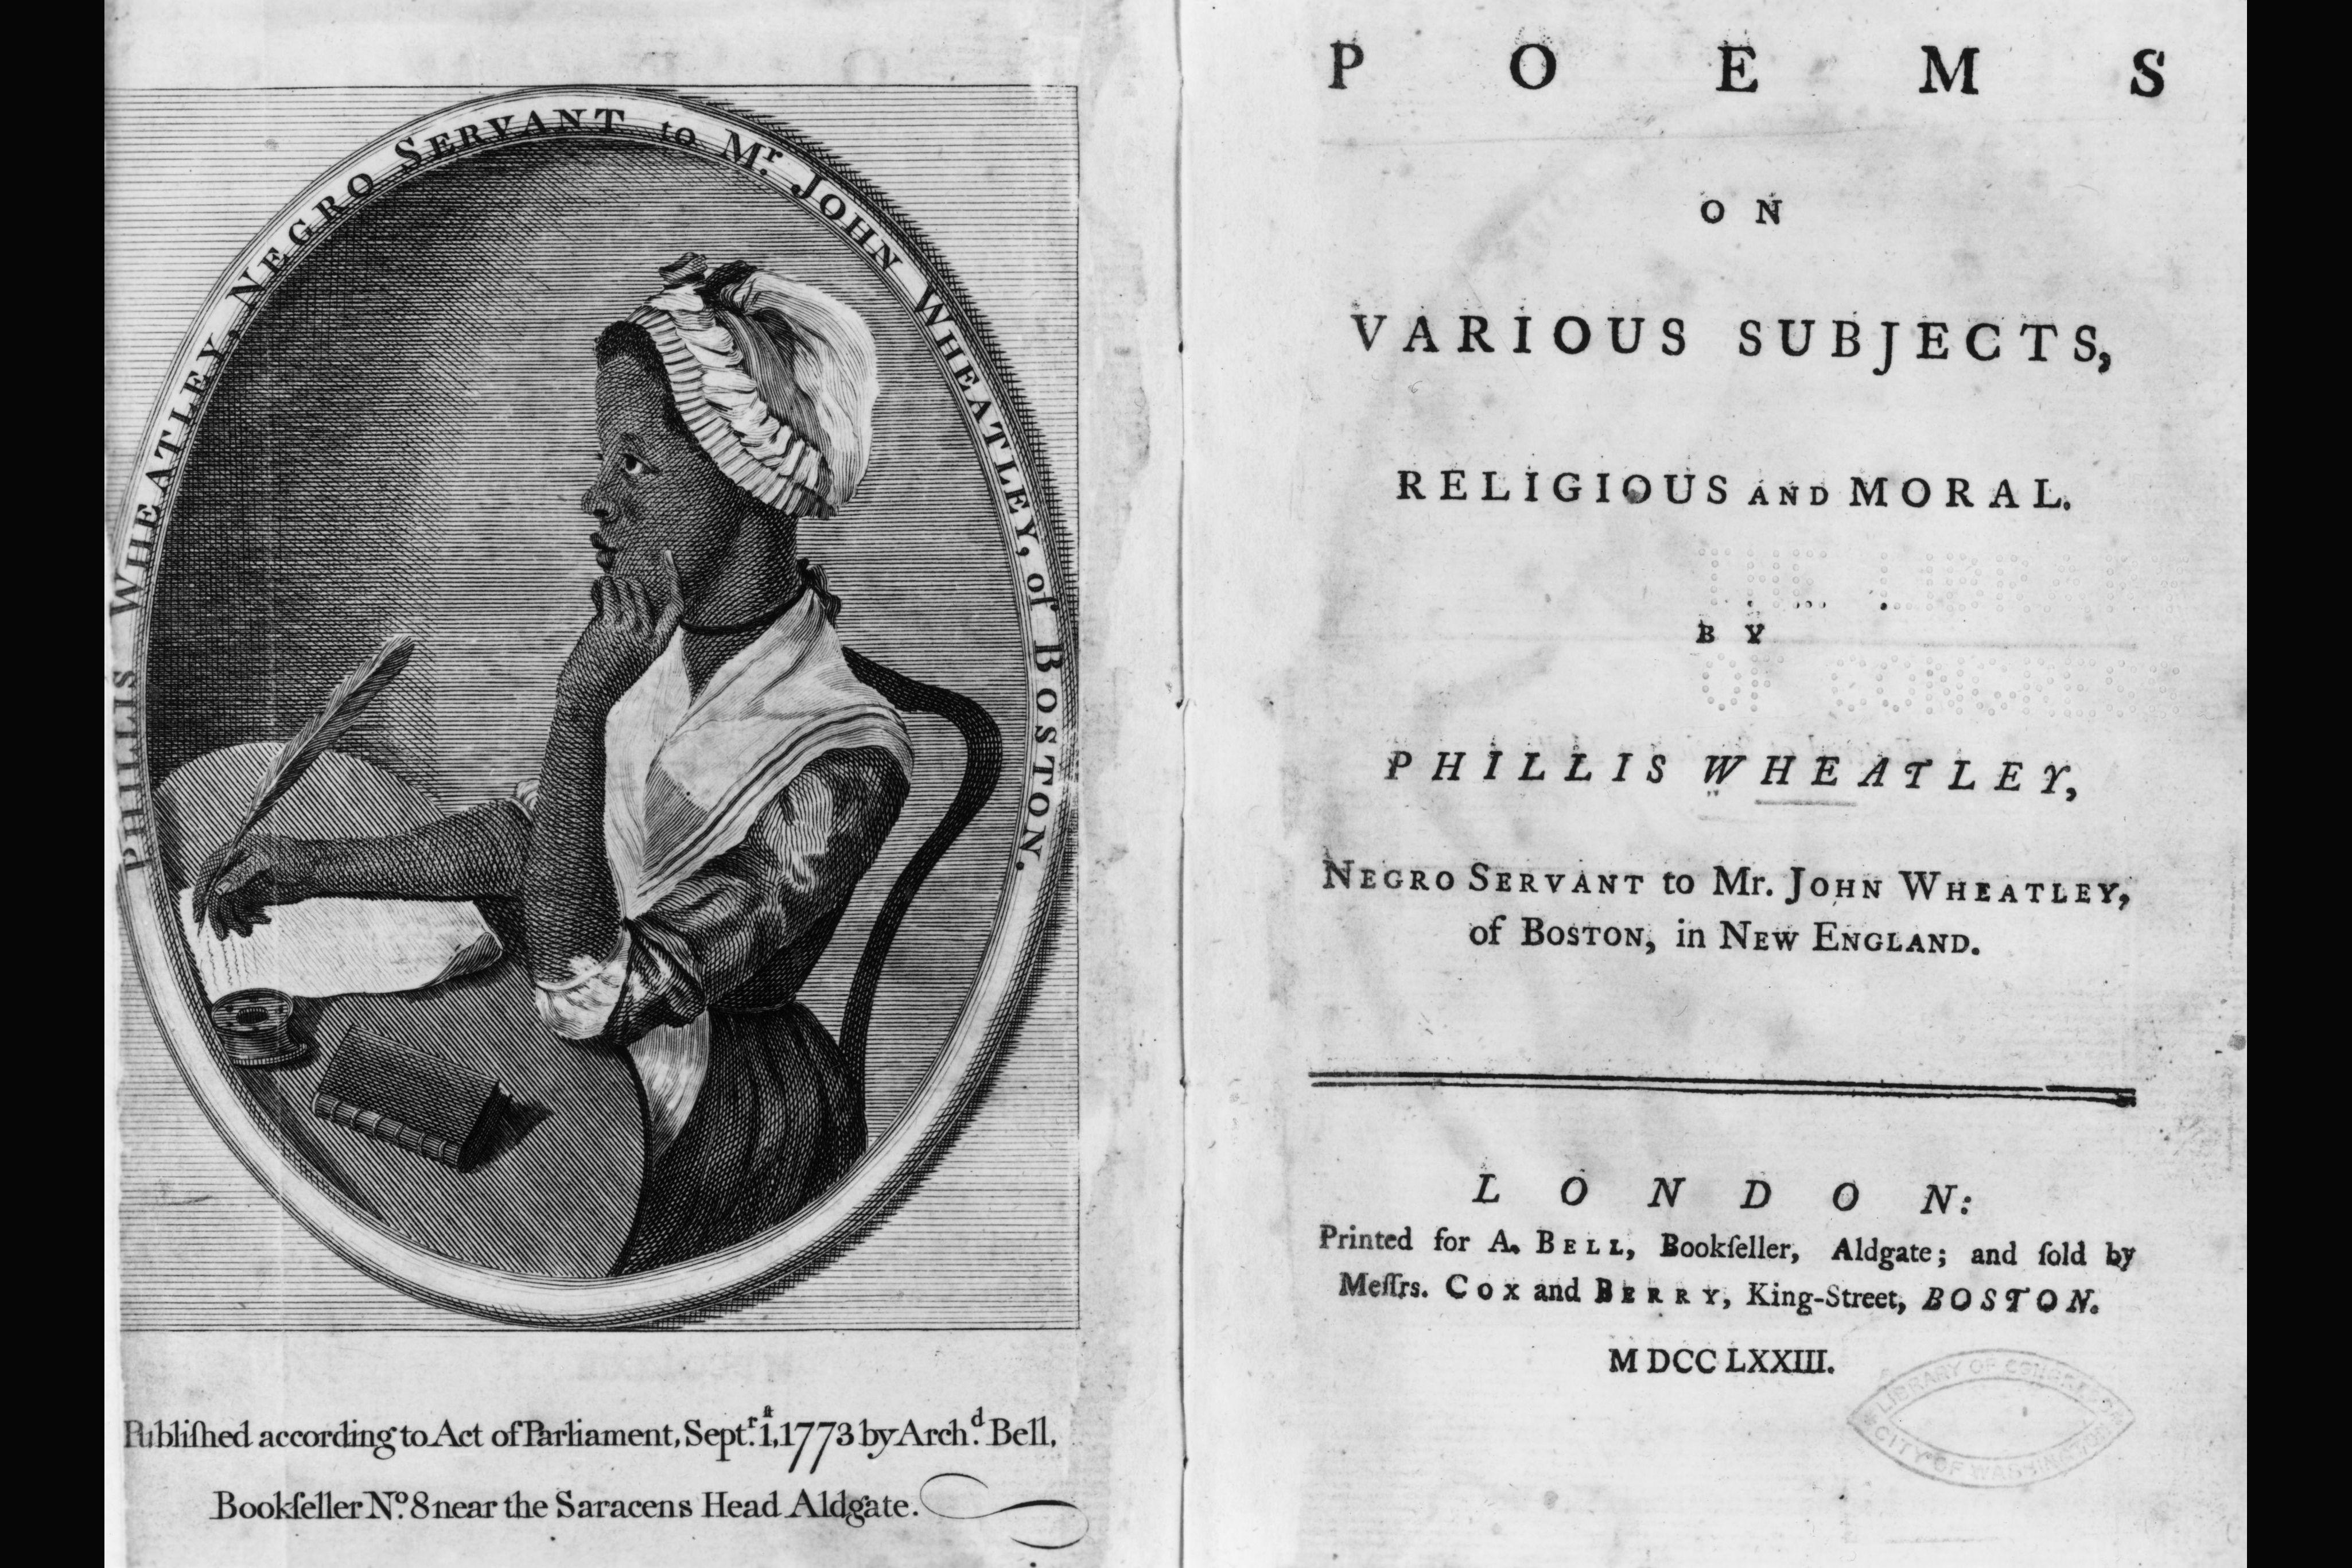 Slave Poet of Colonial America: Analysis of Her Poems